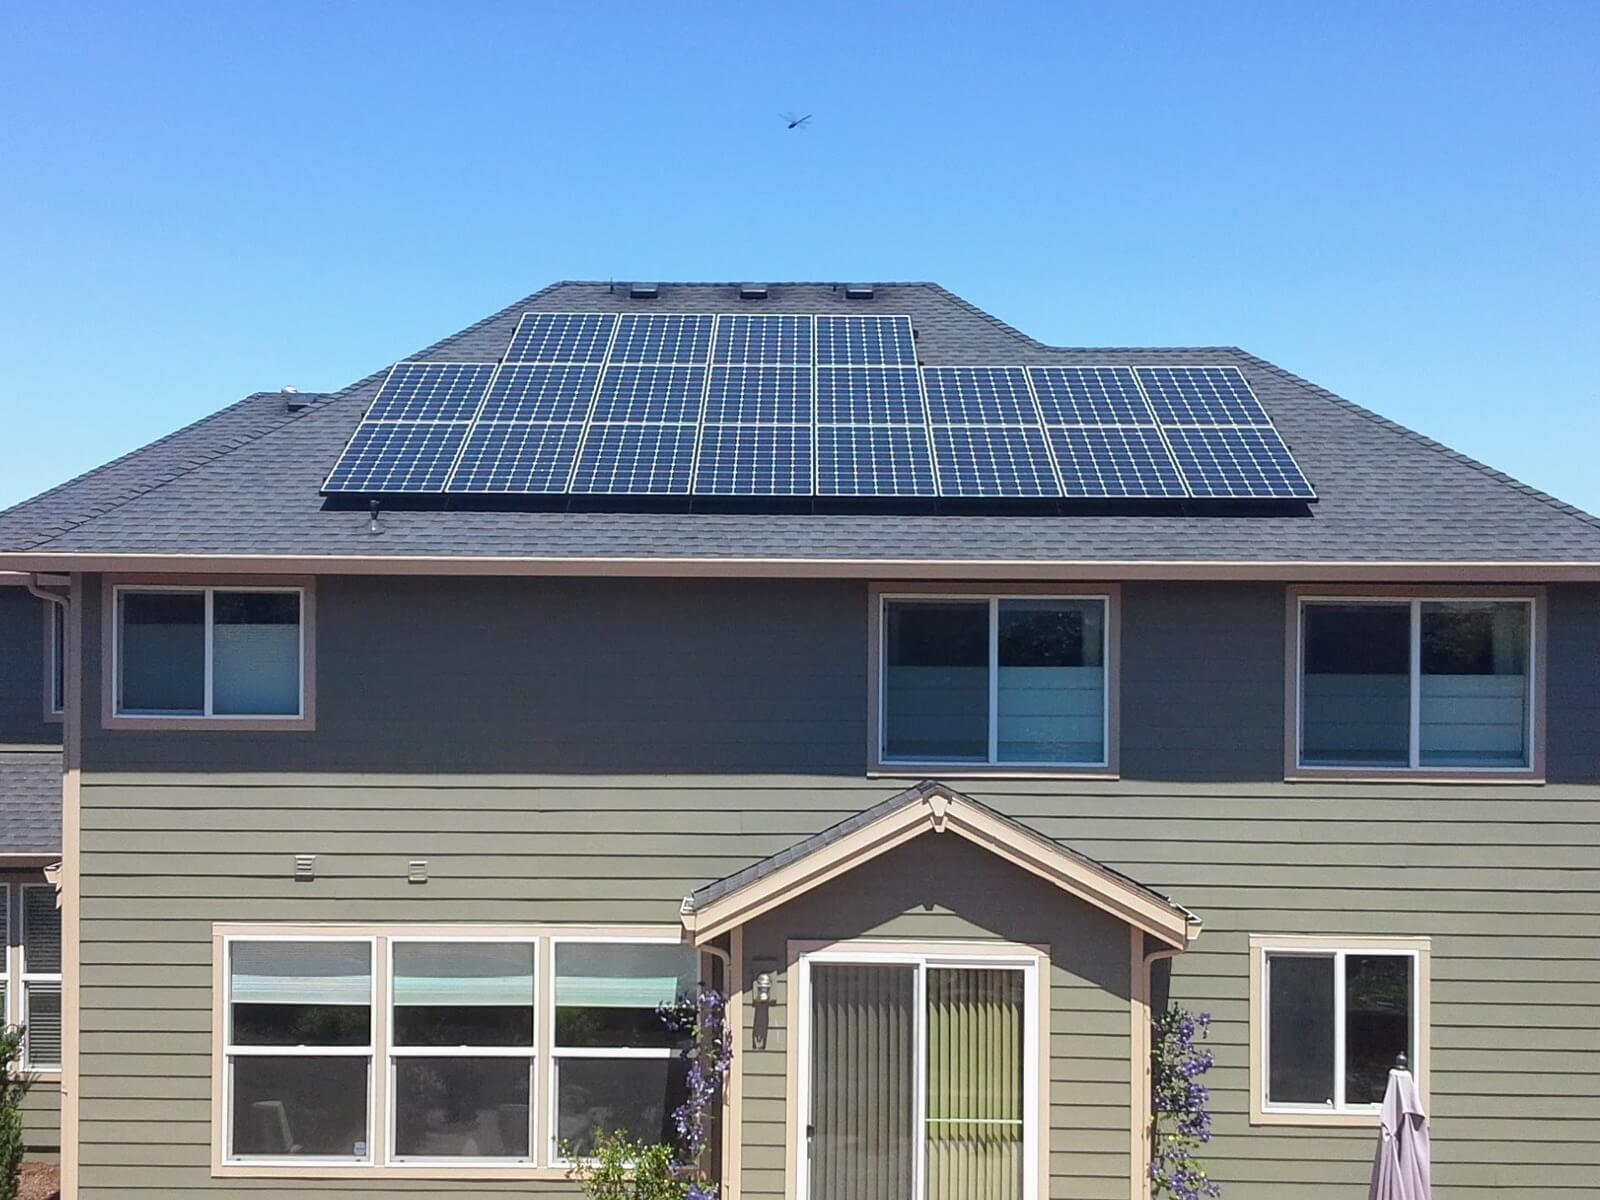 solar electric system on home.jpeg